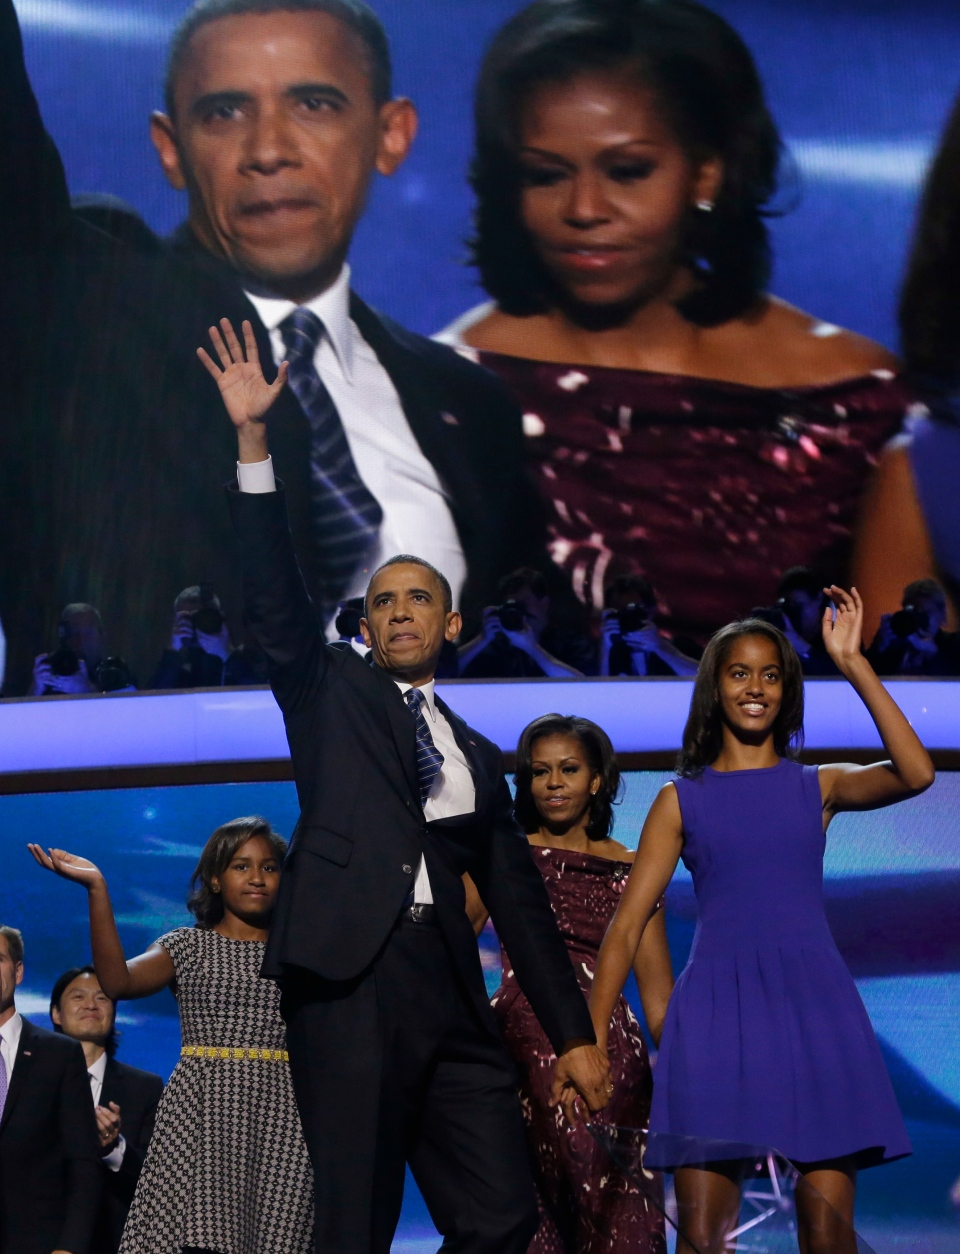 U.S. President Barack Obama and his daughter Malia wave after Obama's speech to the Democratic National Convention in Charlotte, N.C., Thursday, Sept. 6, 2012. Behind them are Sasha and first lady Michelle Obama. (AP / Charles Dharapak)